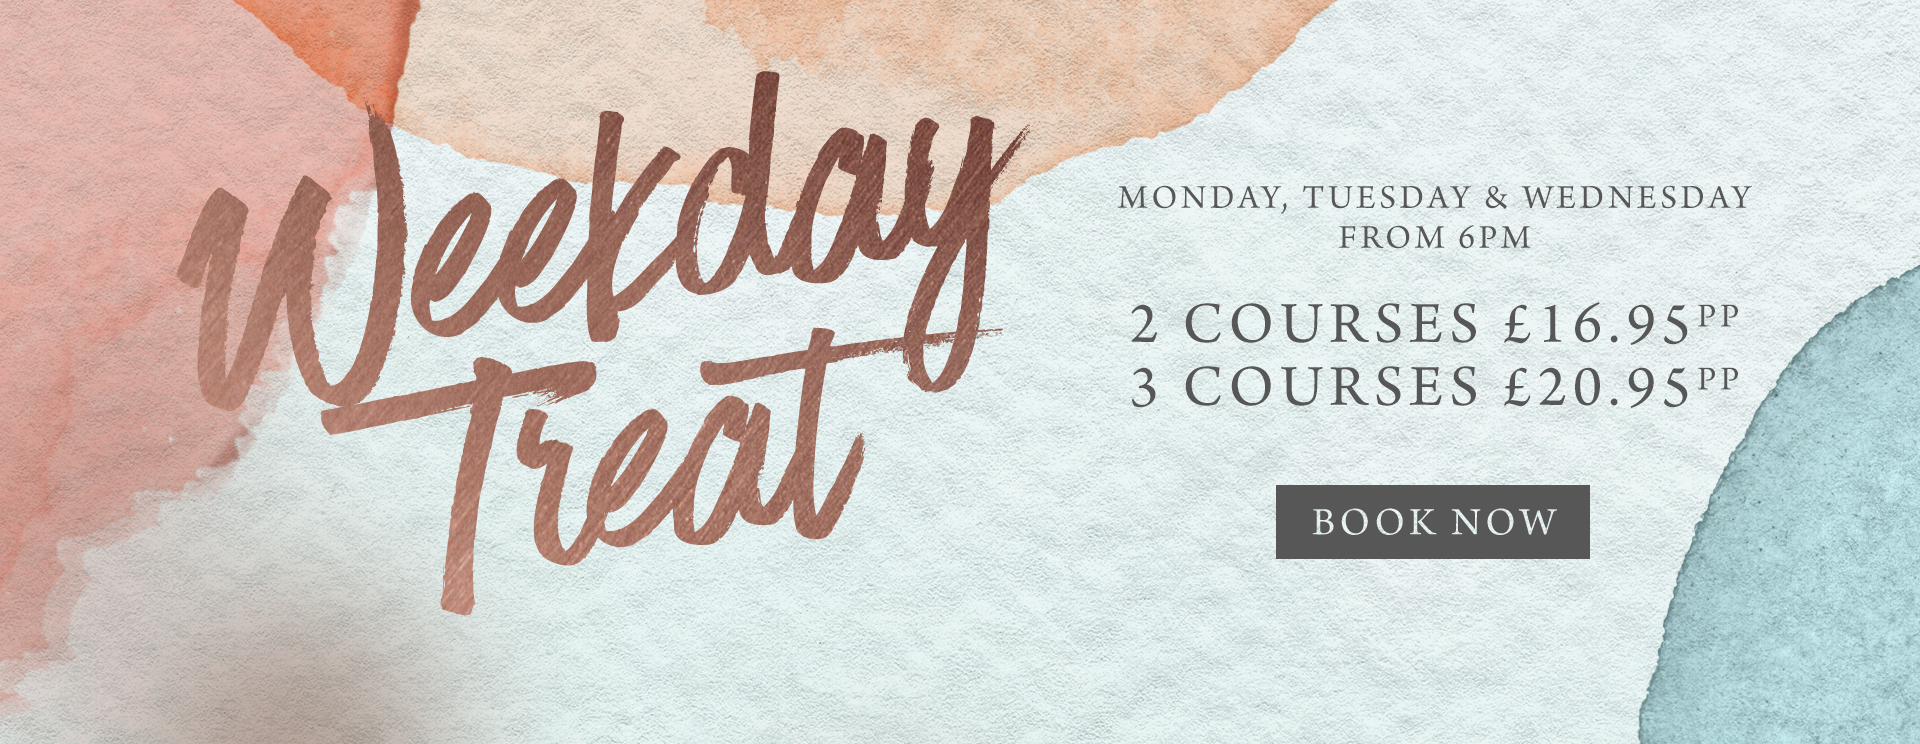 Weekday treat at The Golden Heart - Book now